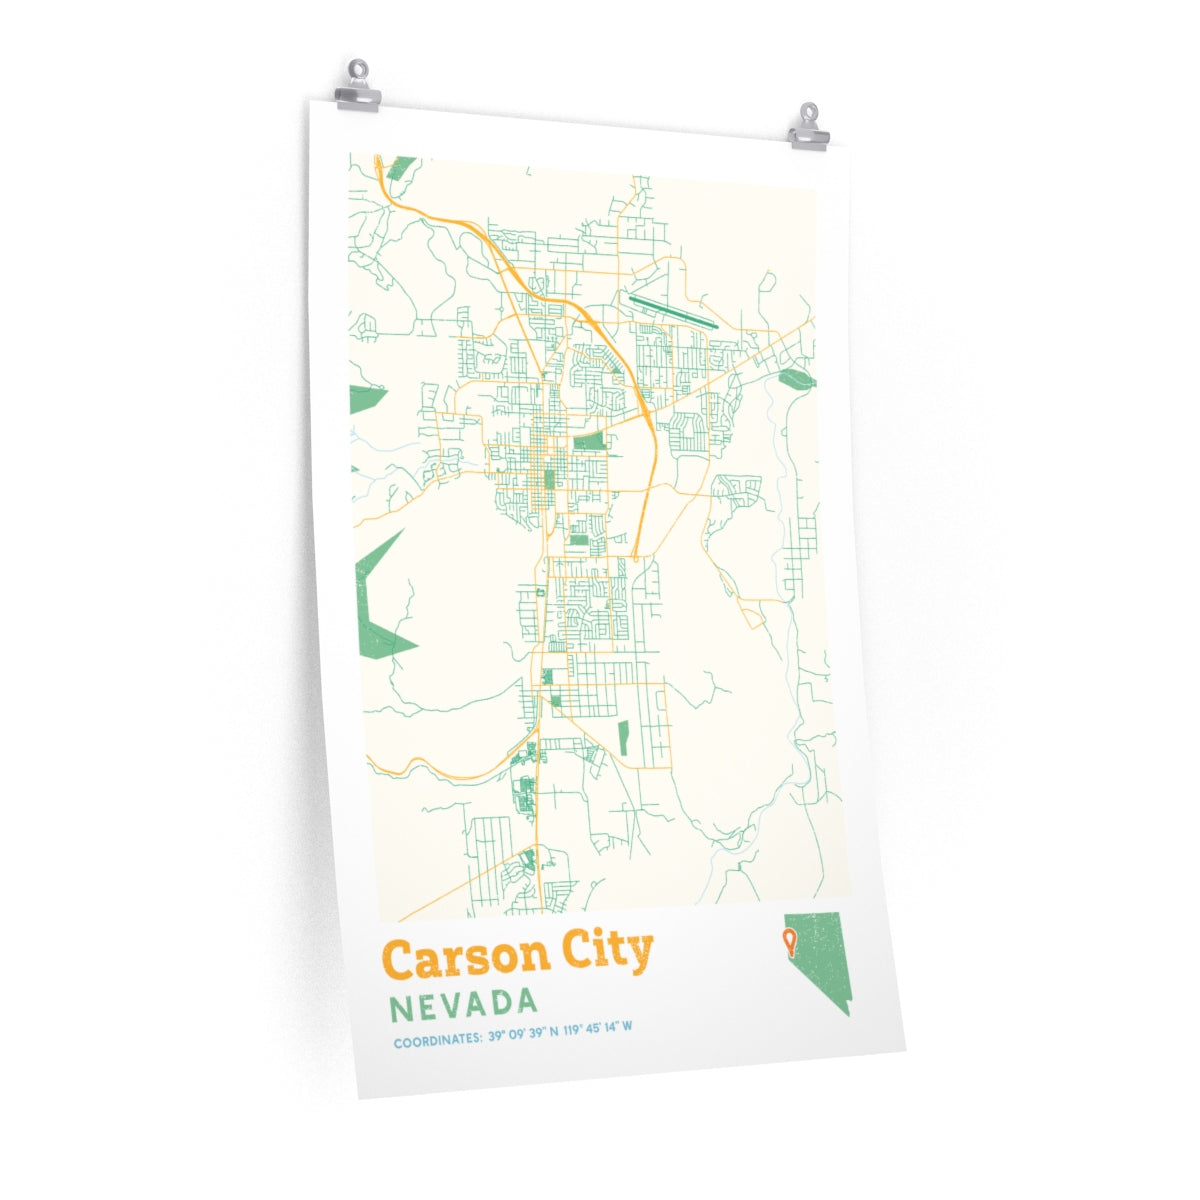 Carson City Nevada City Street Map Poster - Allegiant Goods Co. on